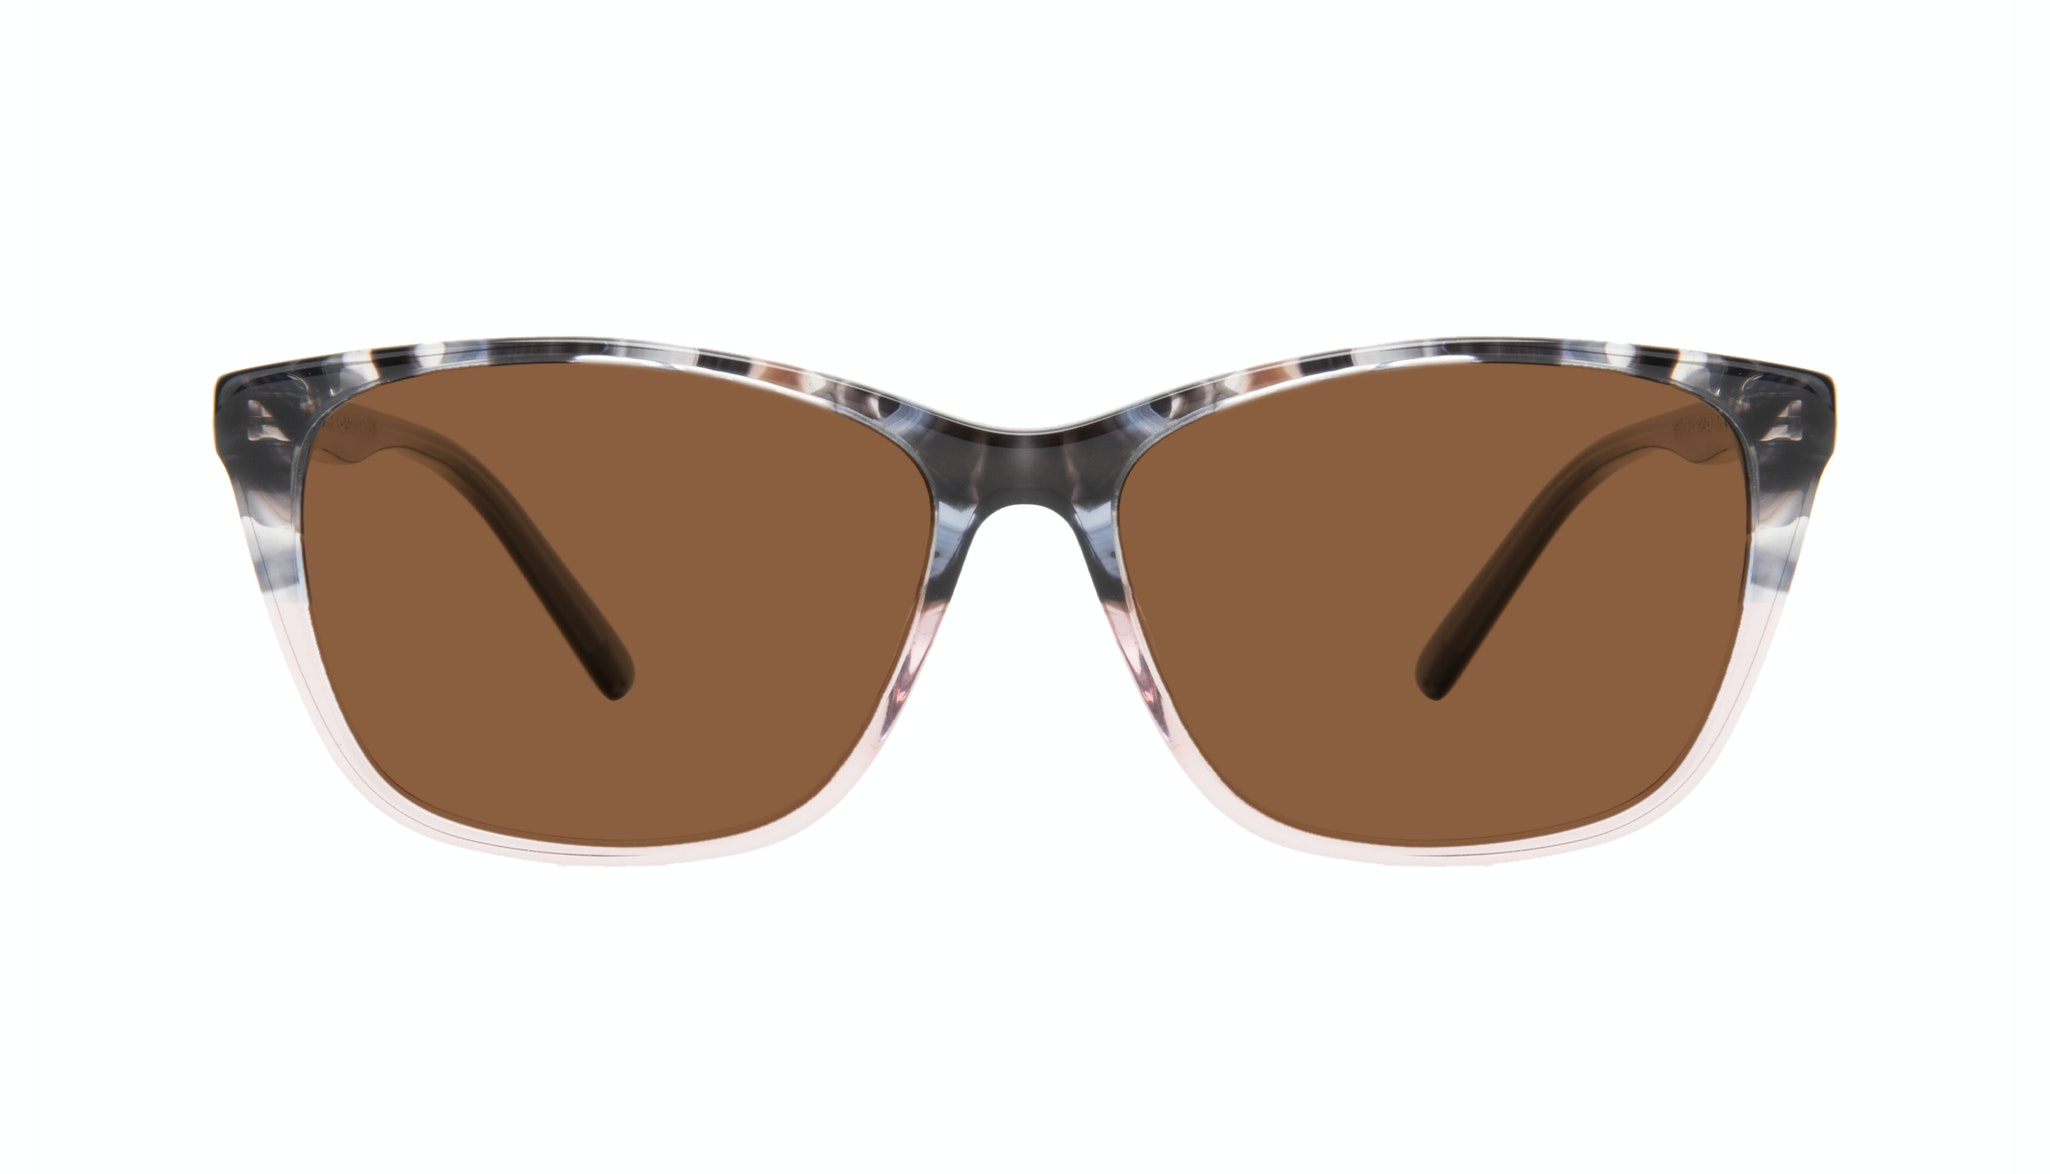 Affordable Fashion Glasses Cat Eye Rectangle Sunglasses Women Myrtle Carbone Pink